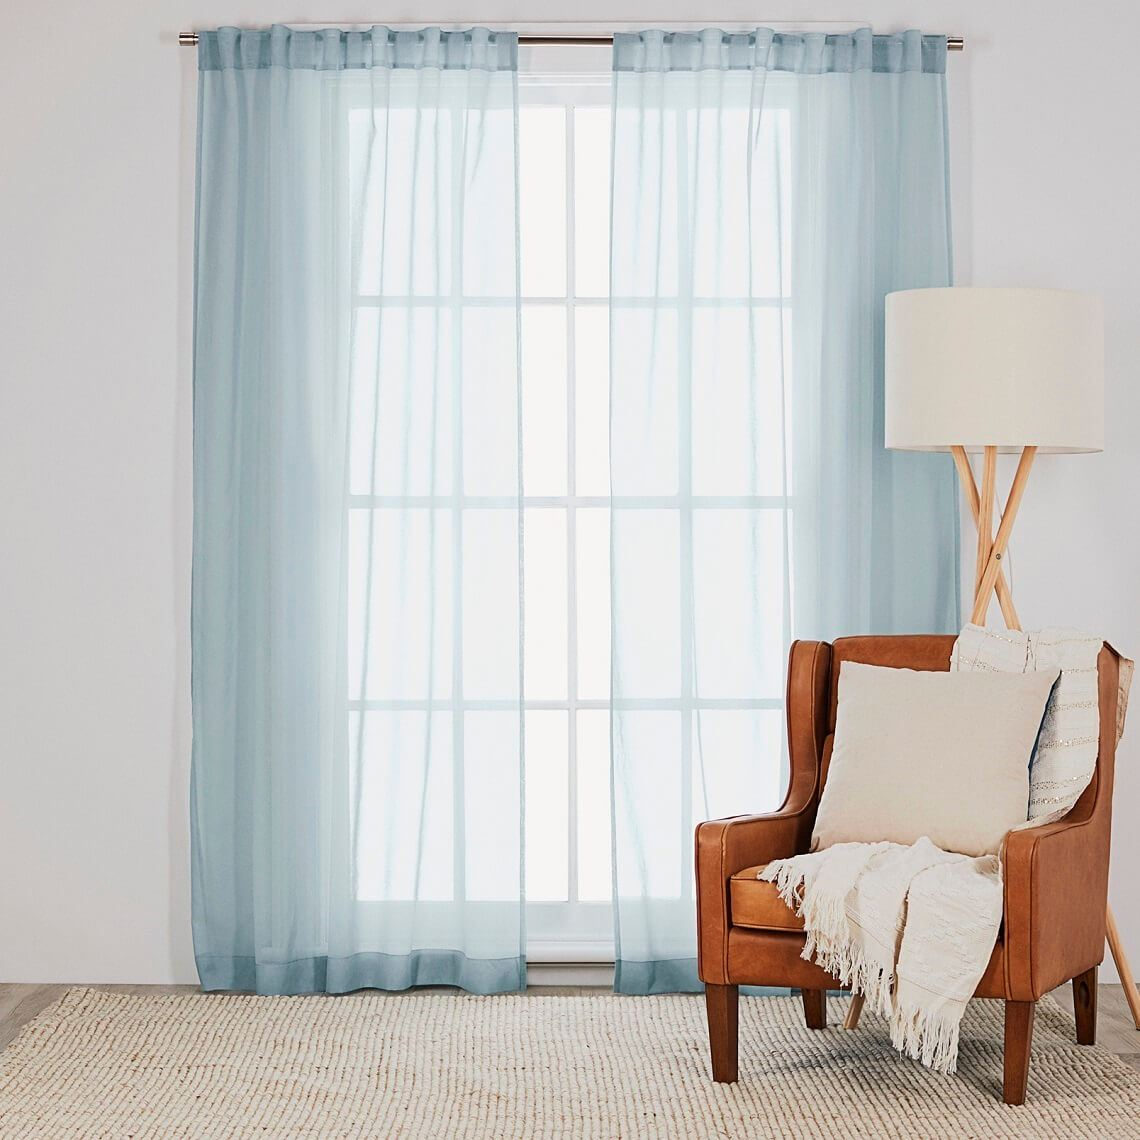 Mineral Sheer Tab Top Curtain Size W 140cm x D 0cm x H 230cm in Duck Egg 100% Polyester Freedom by Freedom, a Curtains for sale on Style Sourcebook